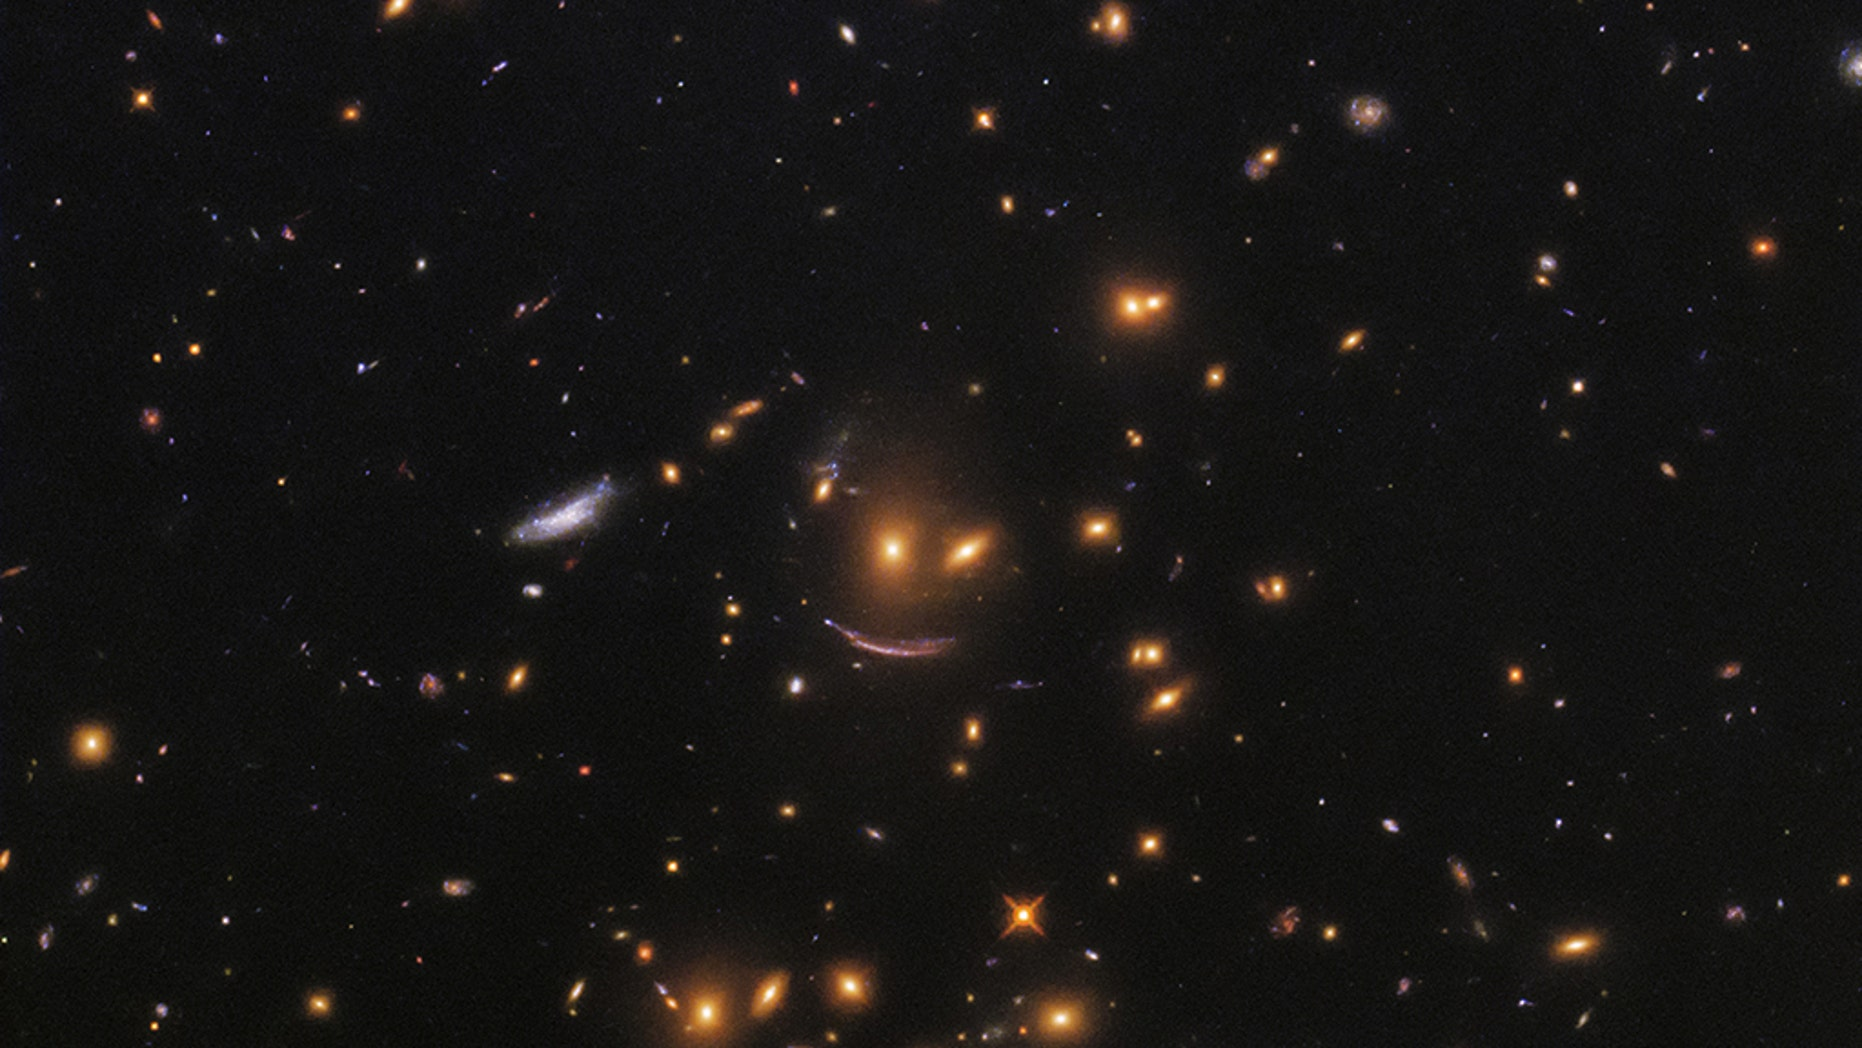 NASA Detects Smiley in New Galaxy Through Its Hubble Space Telescope